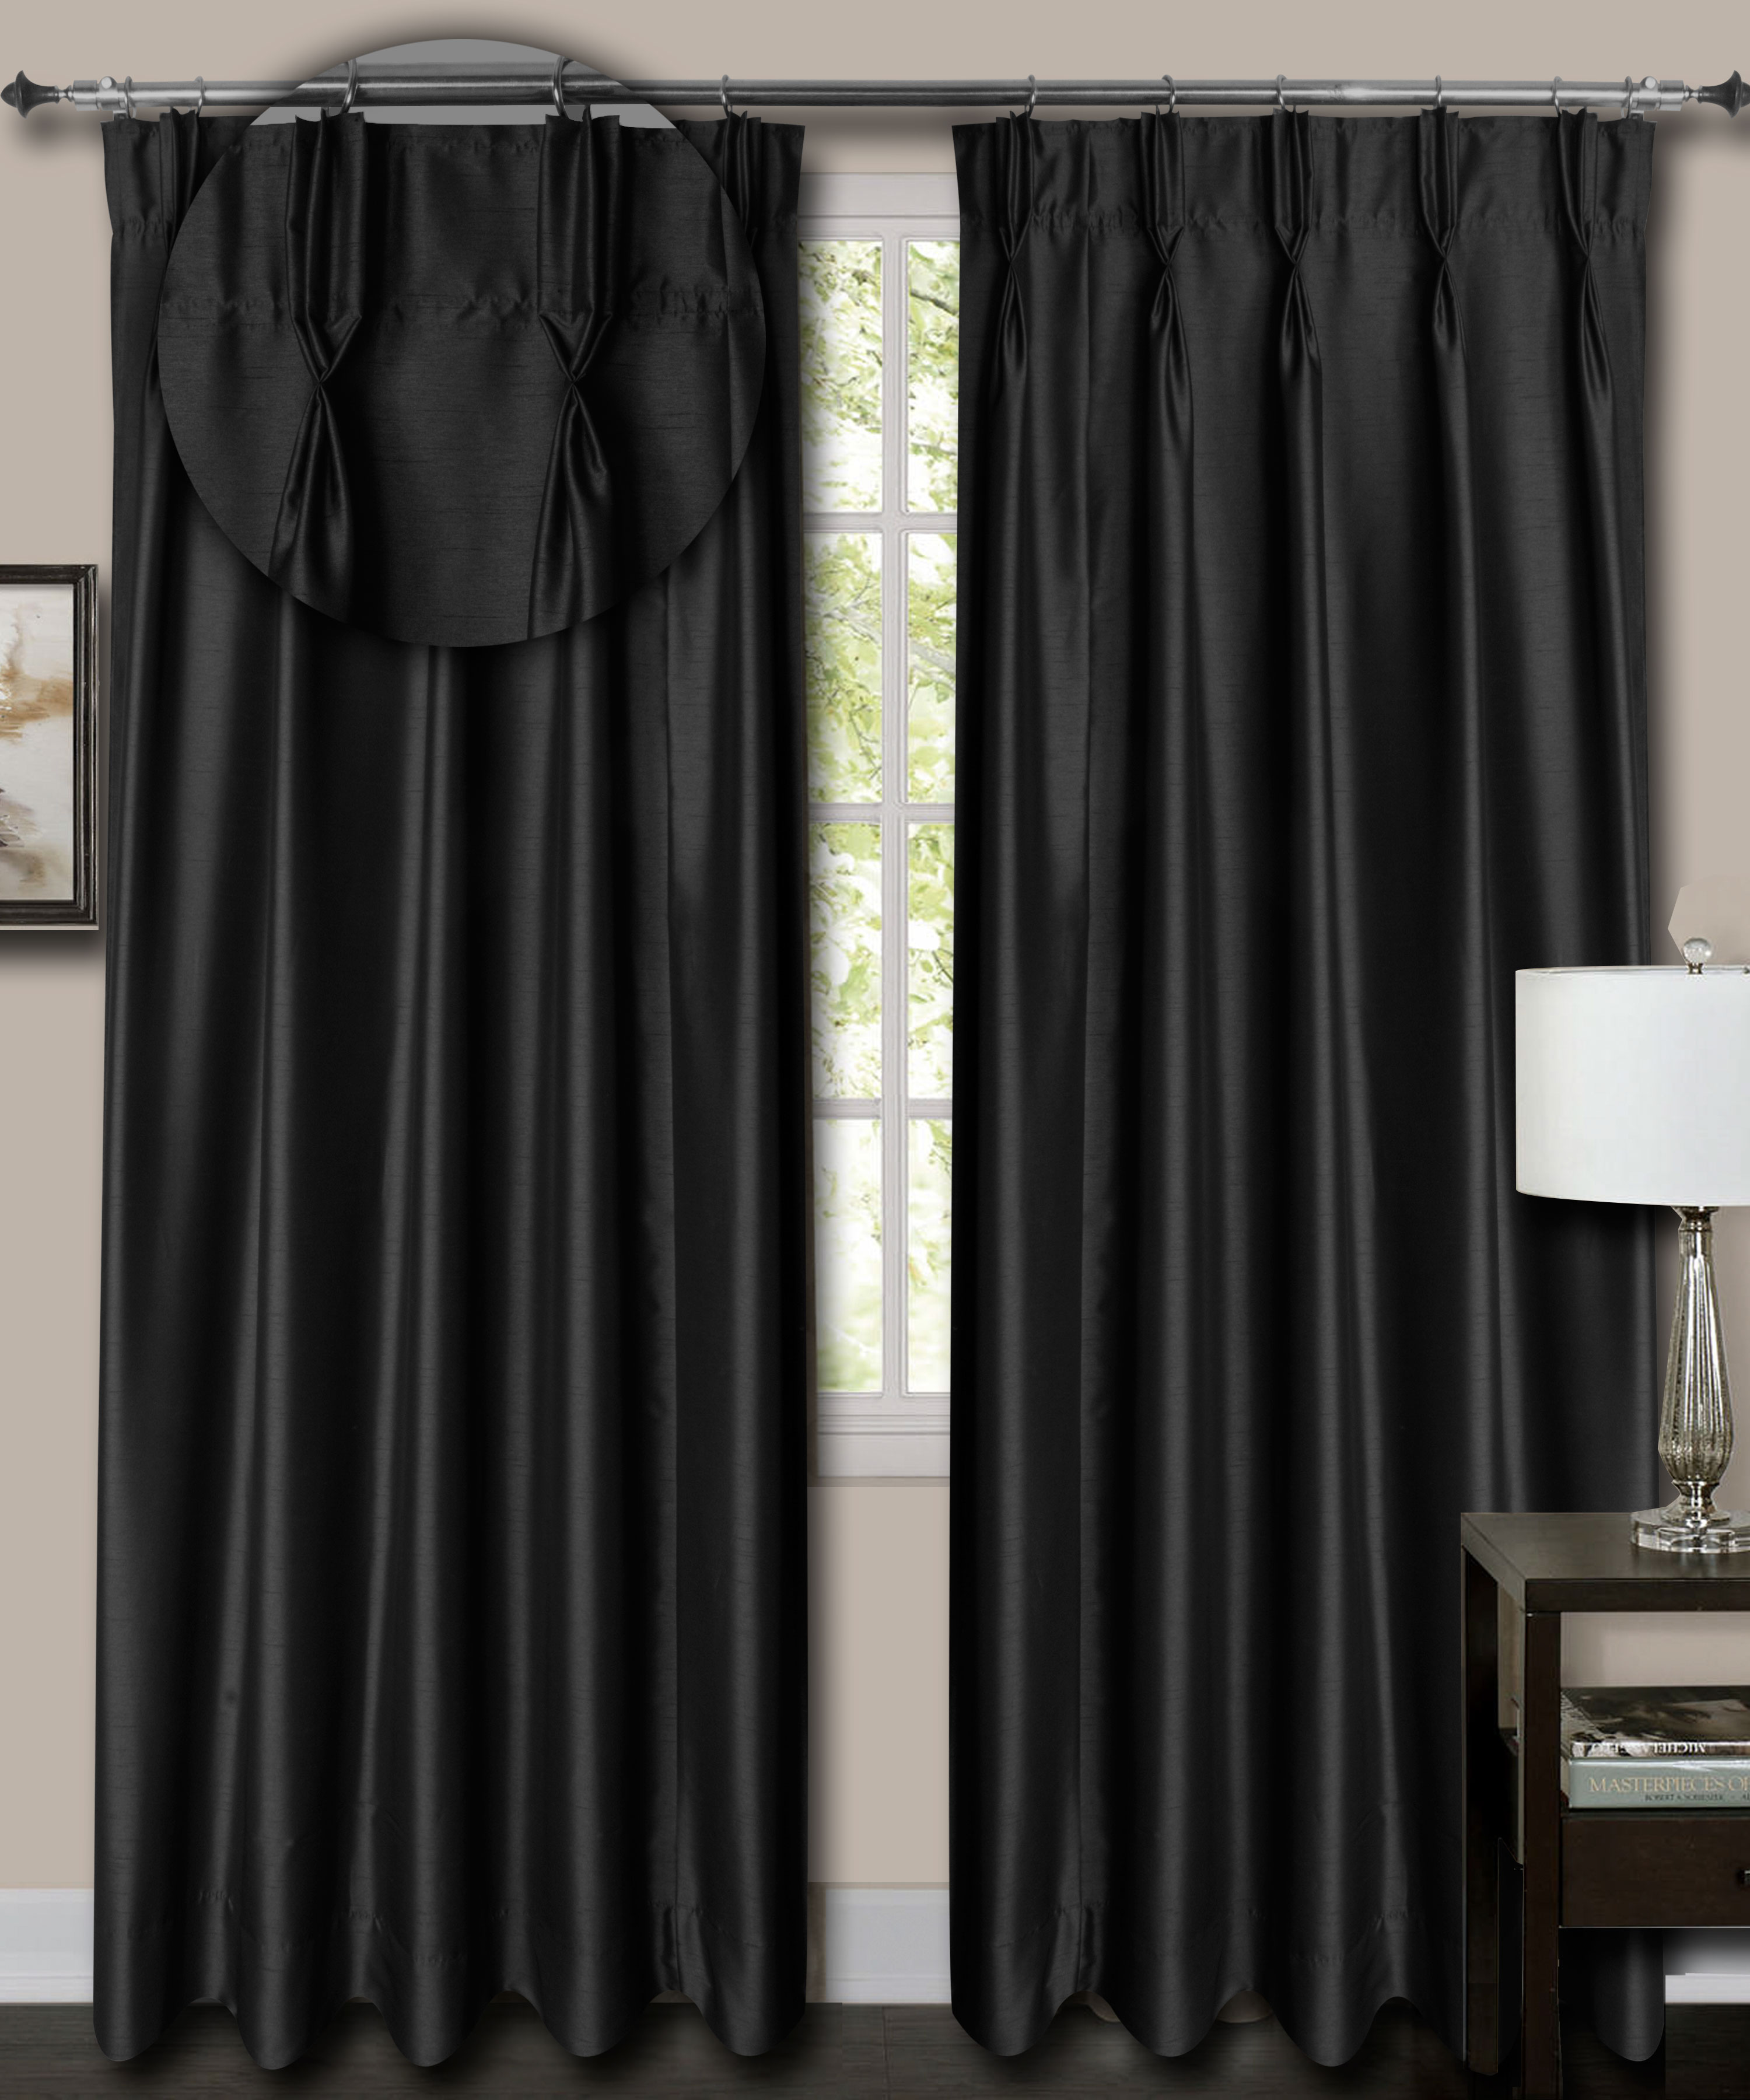 """French Pleat Top Black Faux Silk Dupioni Curtains. (39"""" Wide, 9 Feet Long, Thick Lining)"""